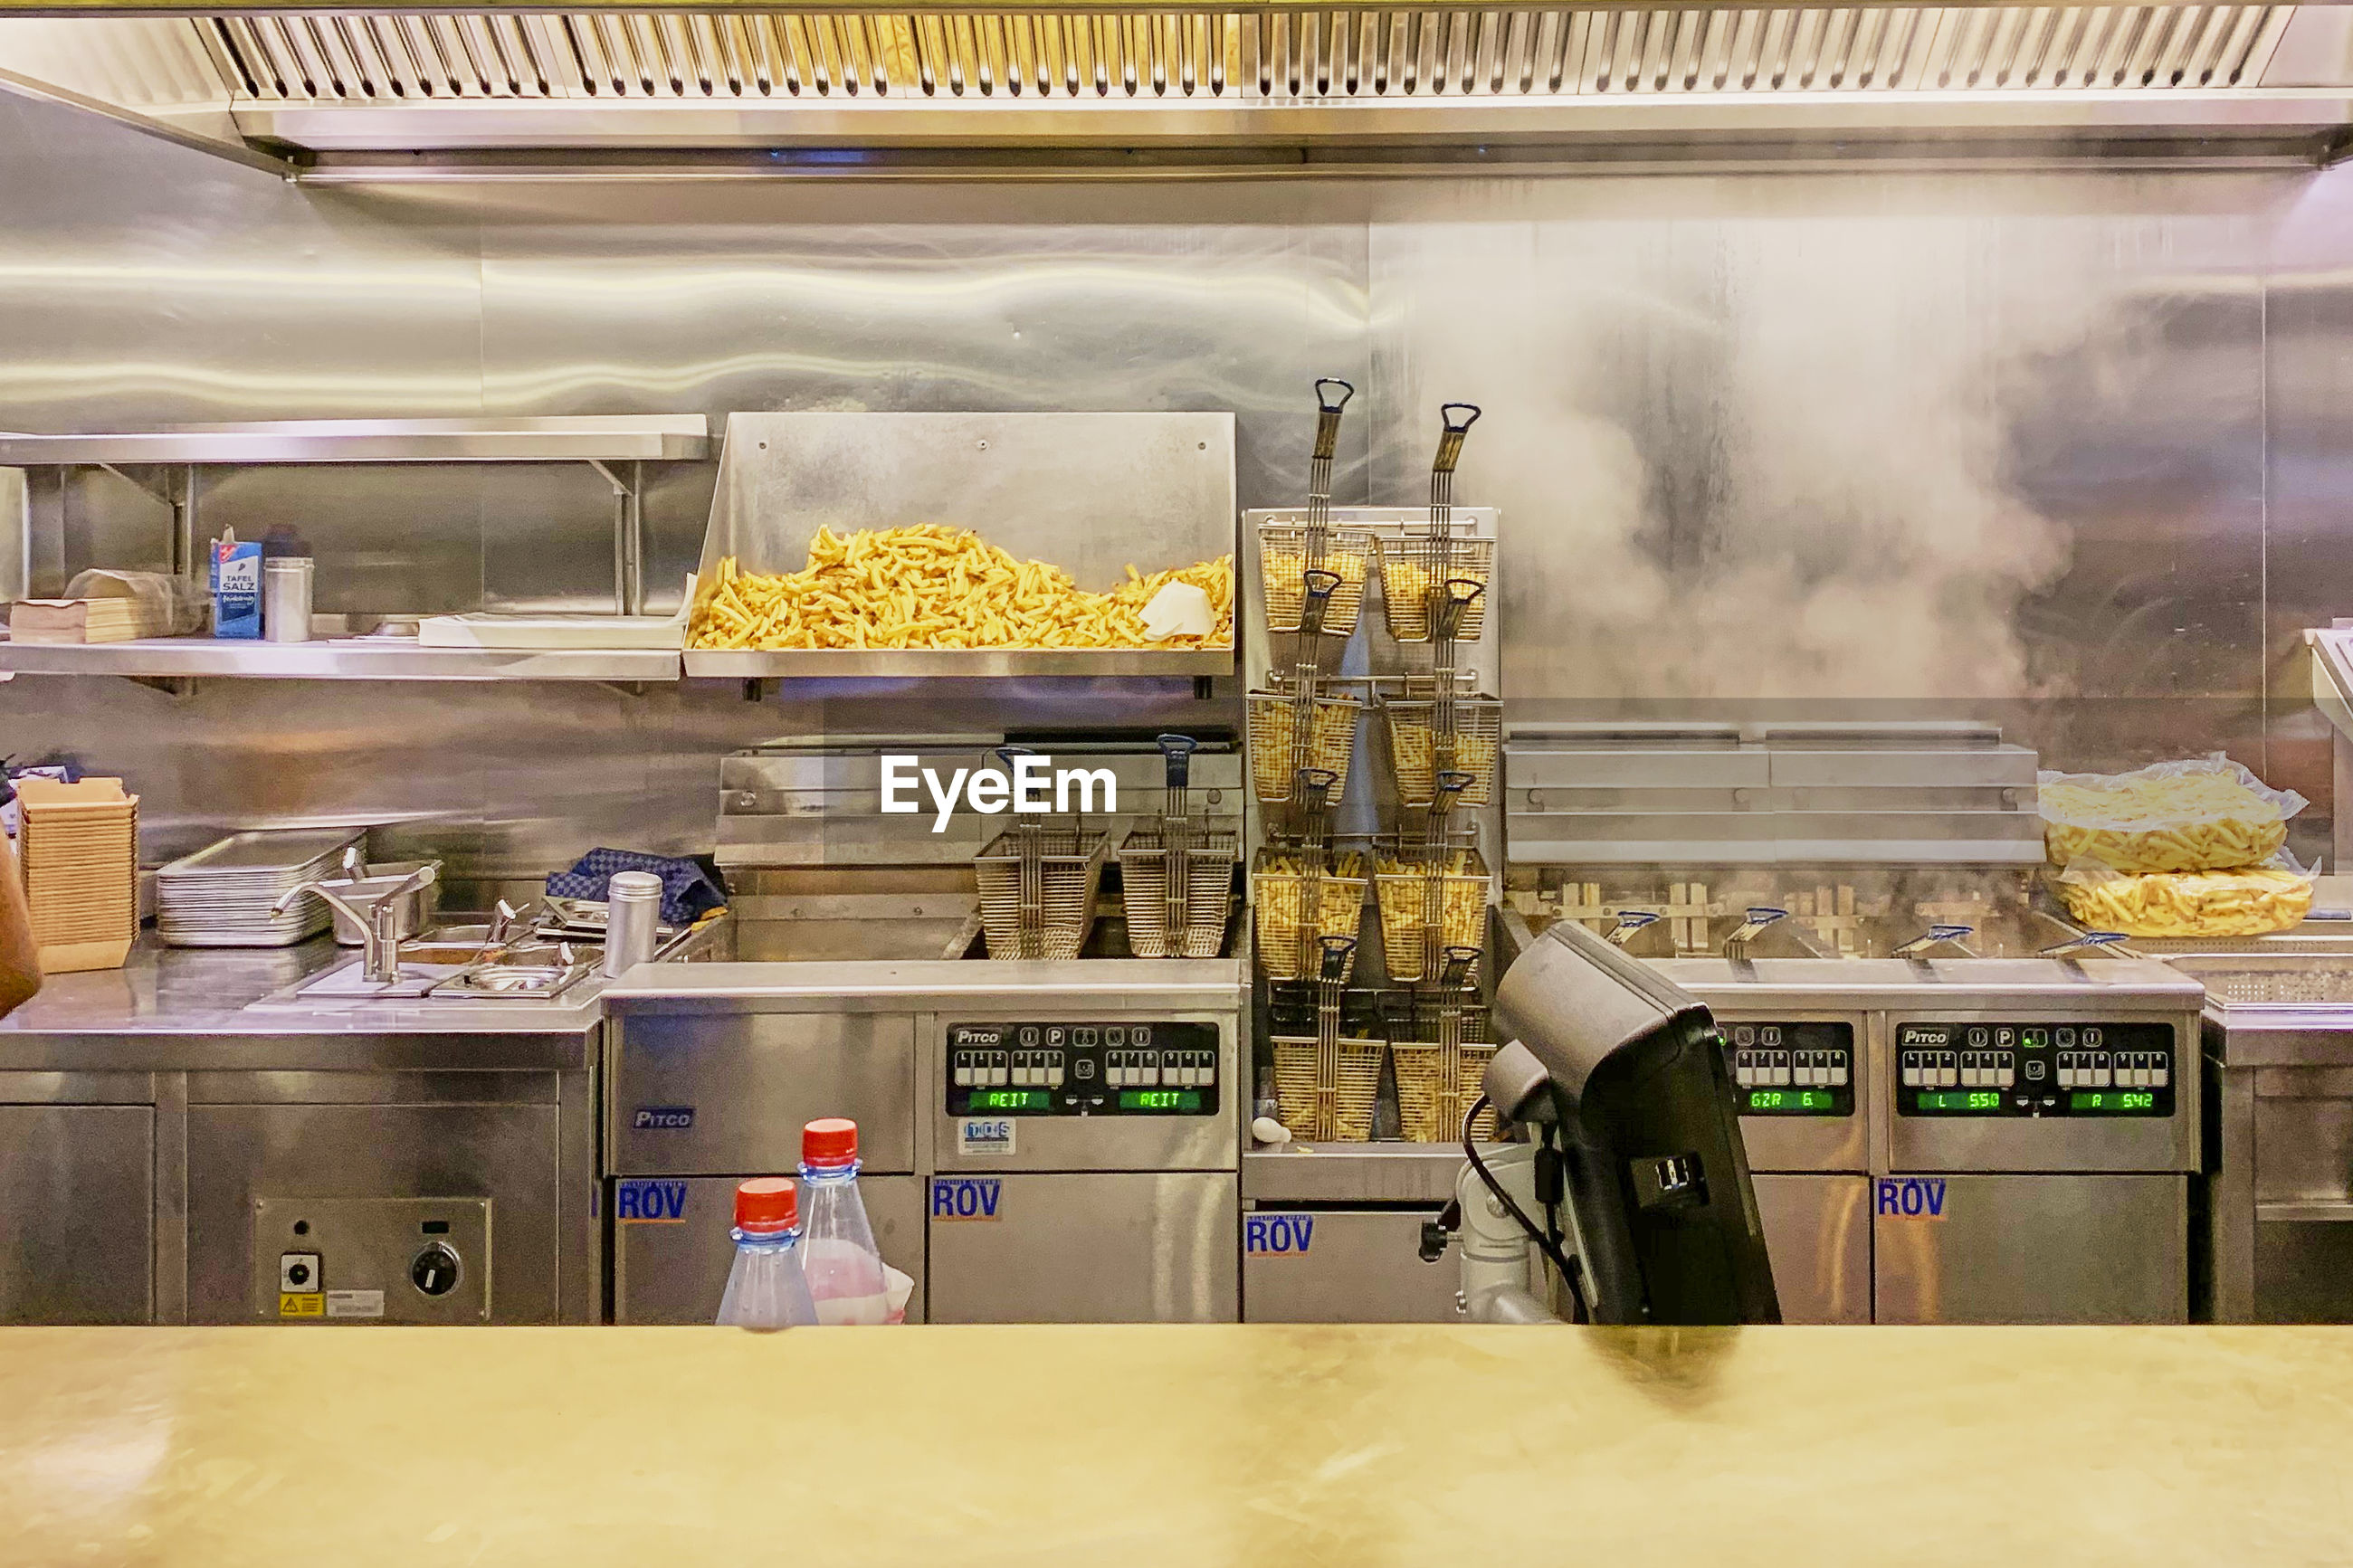 VIEW OF FOOD IN RESTAURANT AT KITCHEN COUNTER